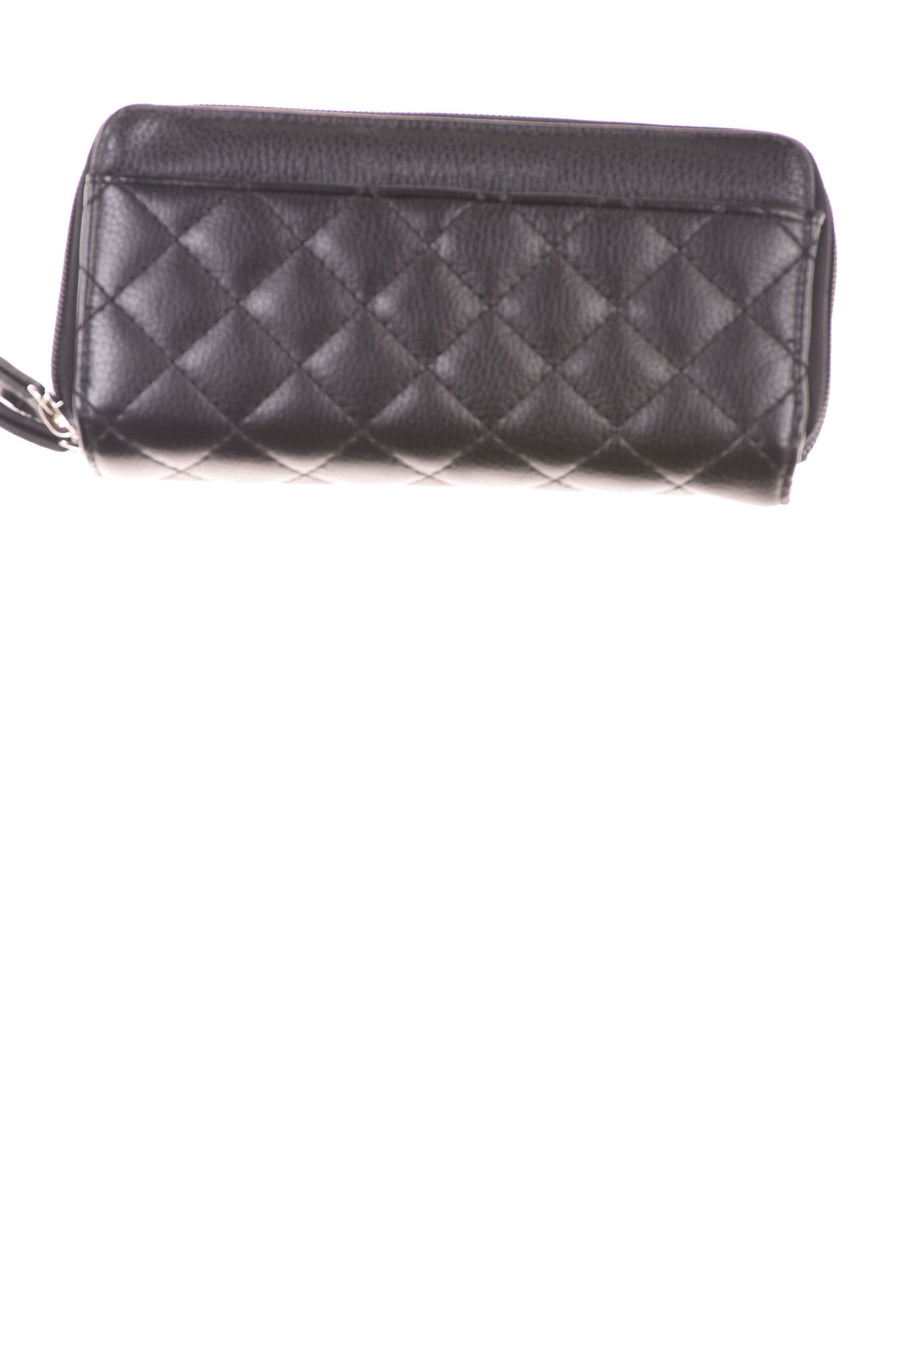 USED Stone Mountain Women's Wallet One Size Black